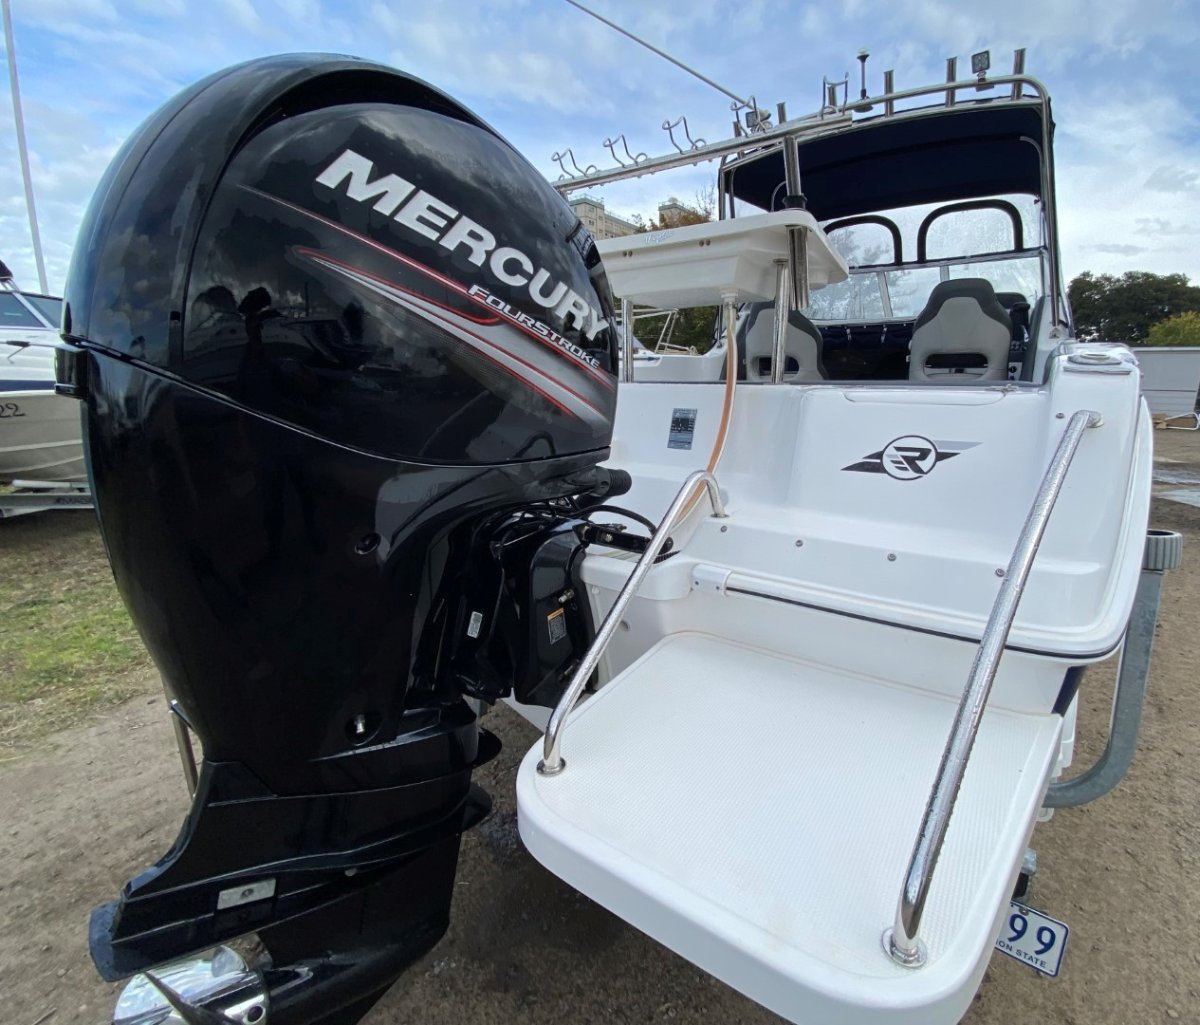 Revival 640 Offshore Cuddy